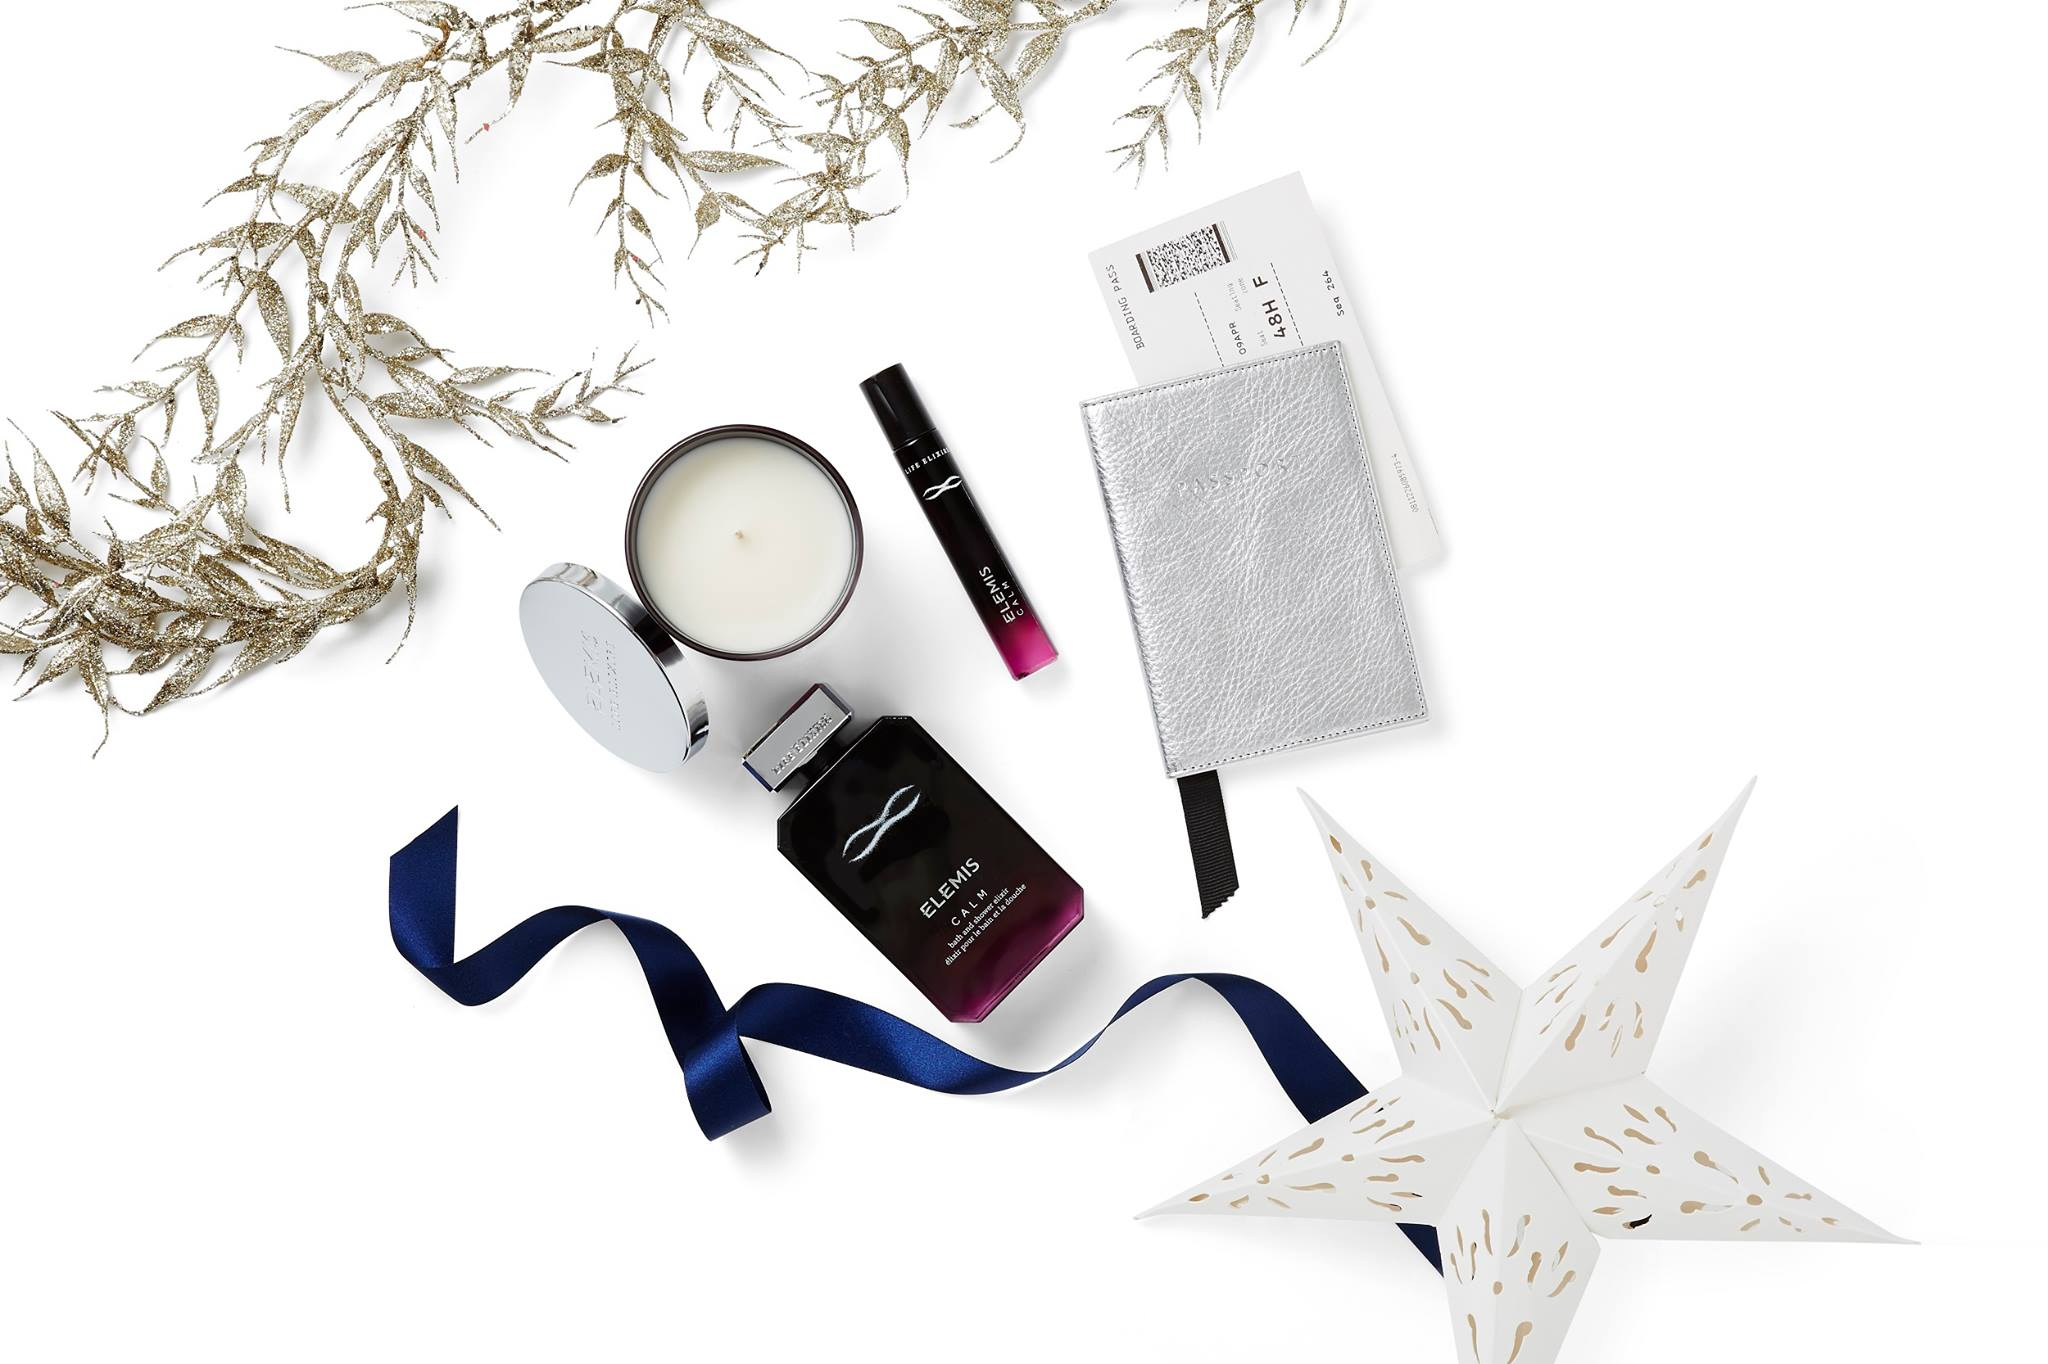 Beauty Gifting Give someone the gift of beauty with our collection of bath, body and fragrance sets by Molton Brown, Cowshed, L'Occitane and more.